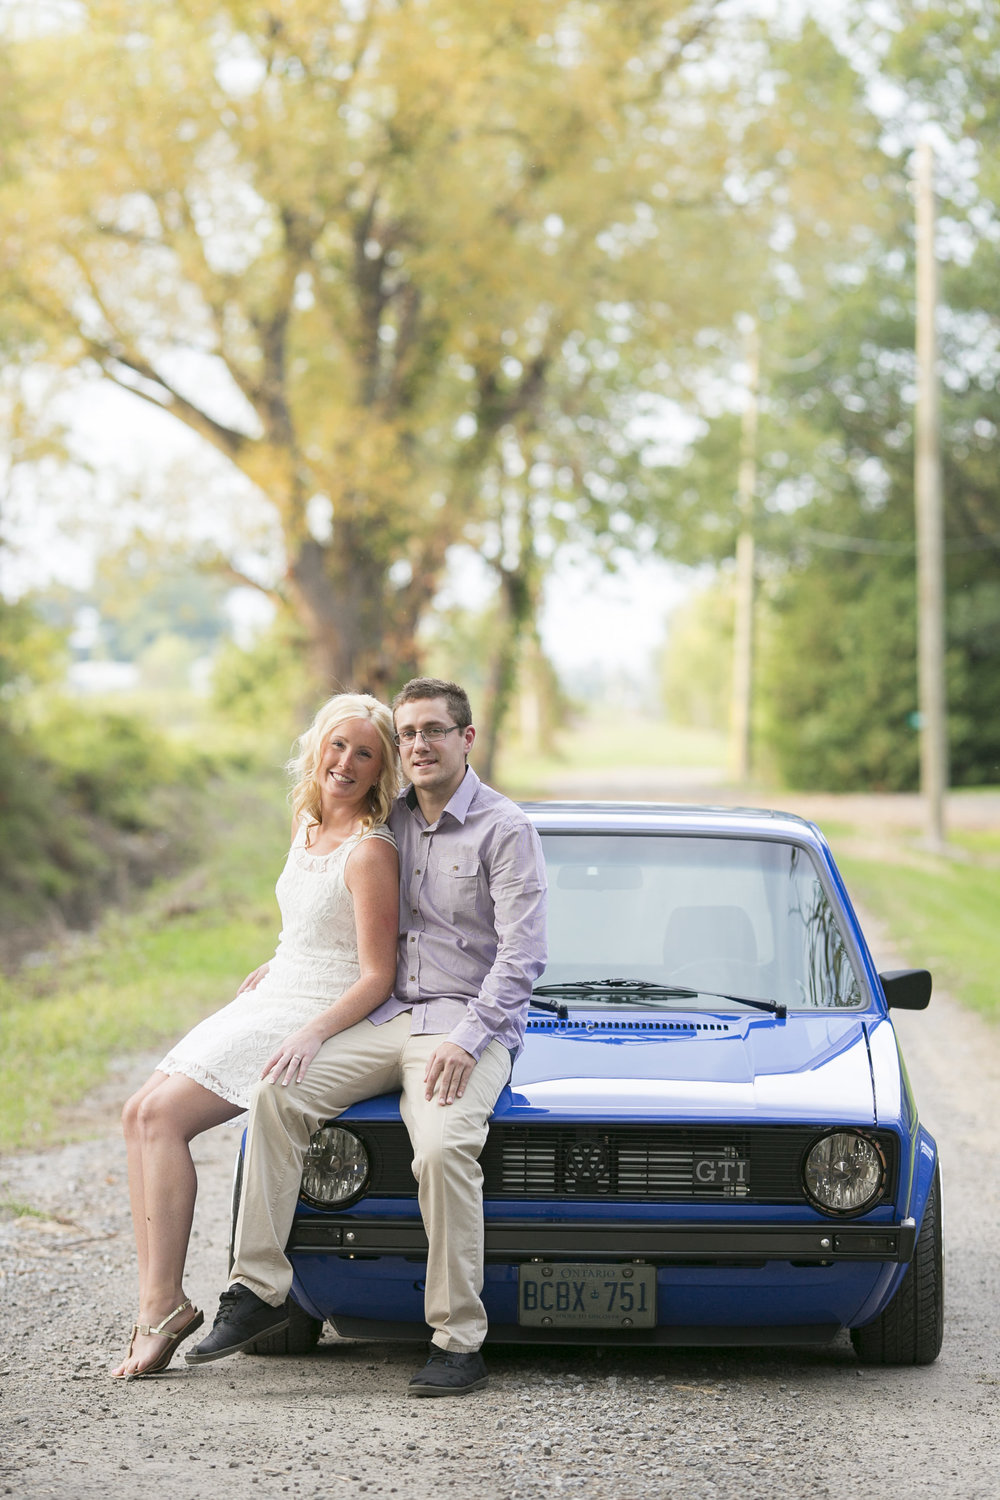 Niagara-on-the-Lake-Engagement-photos-by-Philosophy-Studios-18.JPG